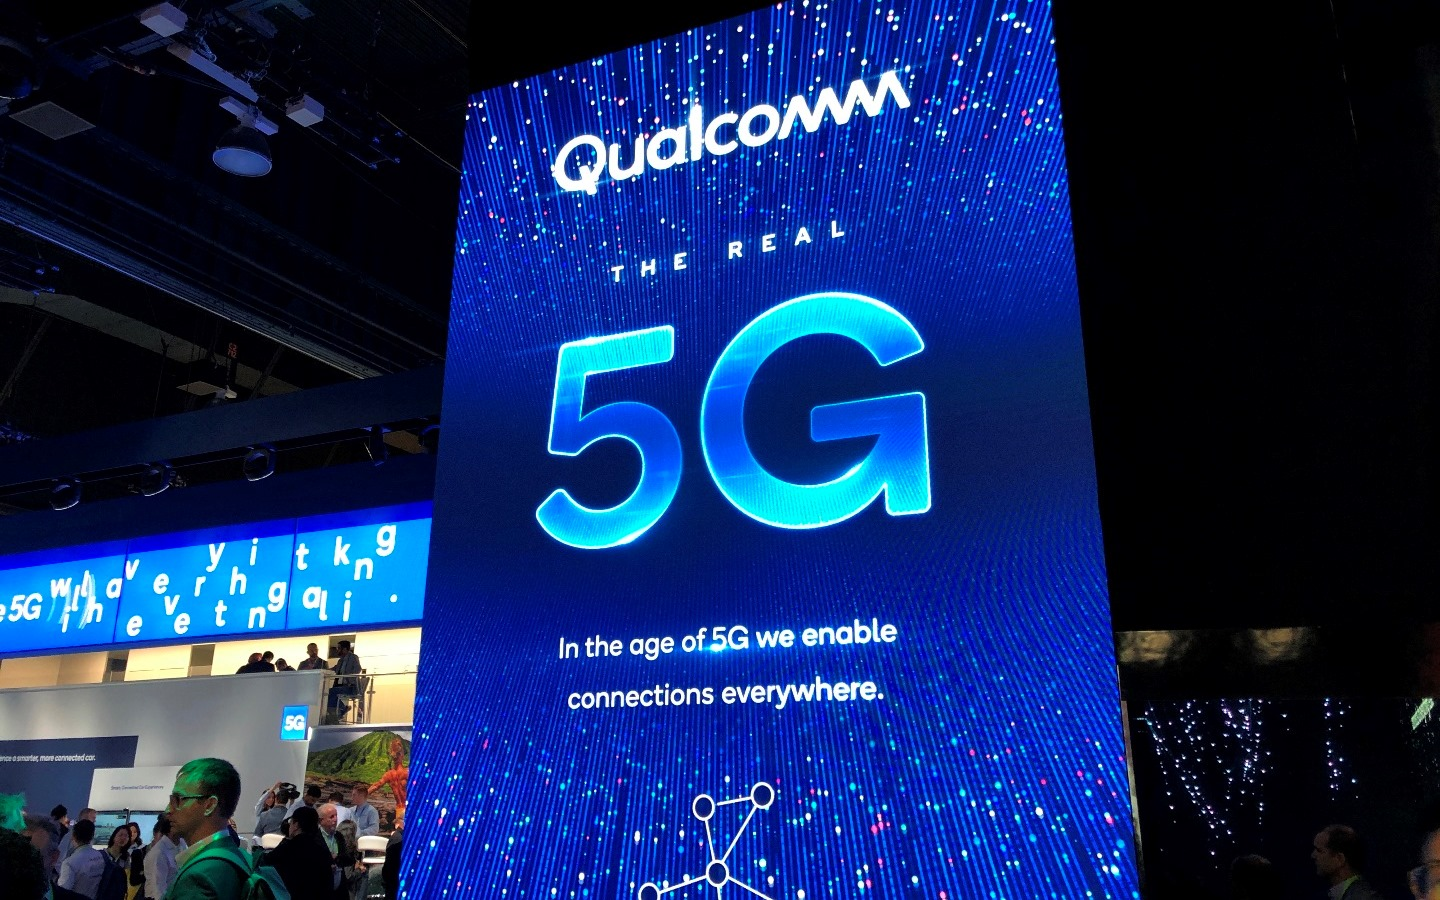 5G stand at CES event